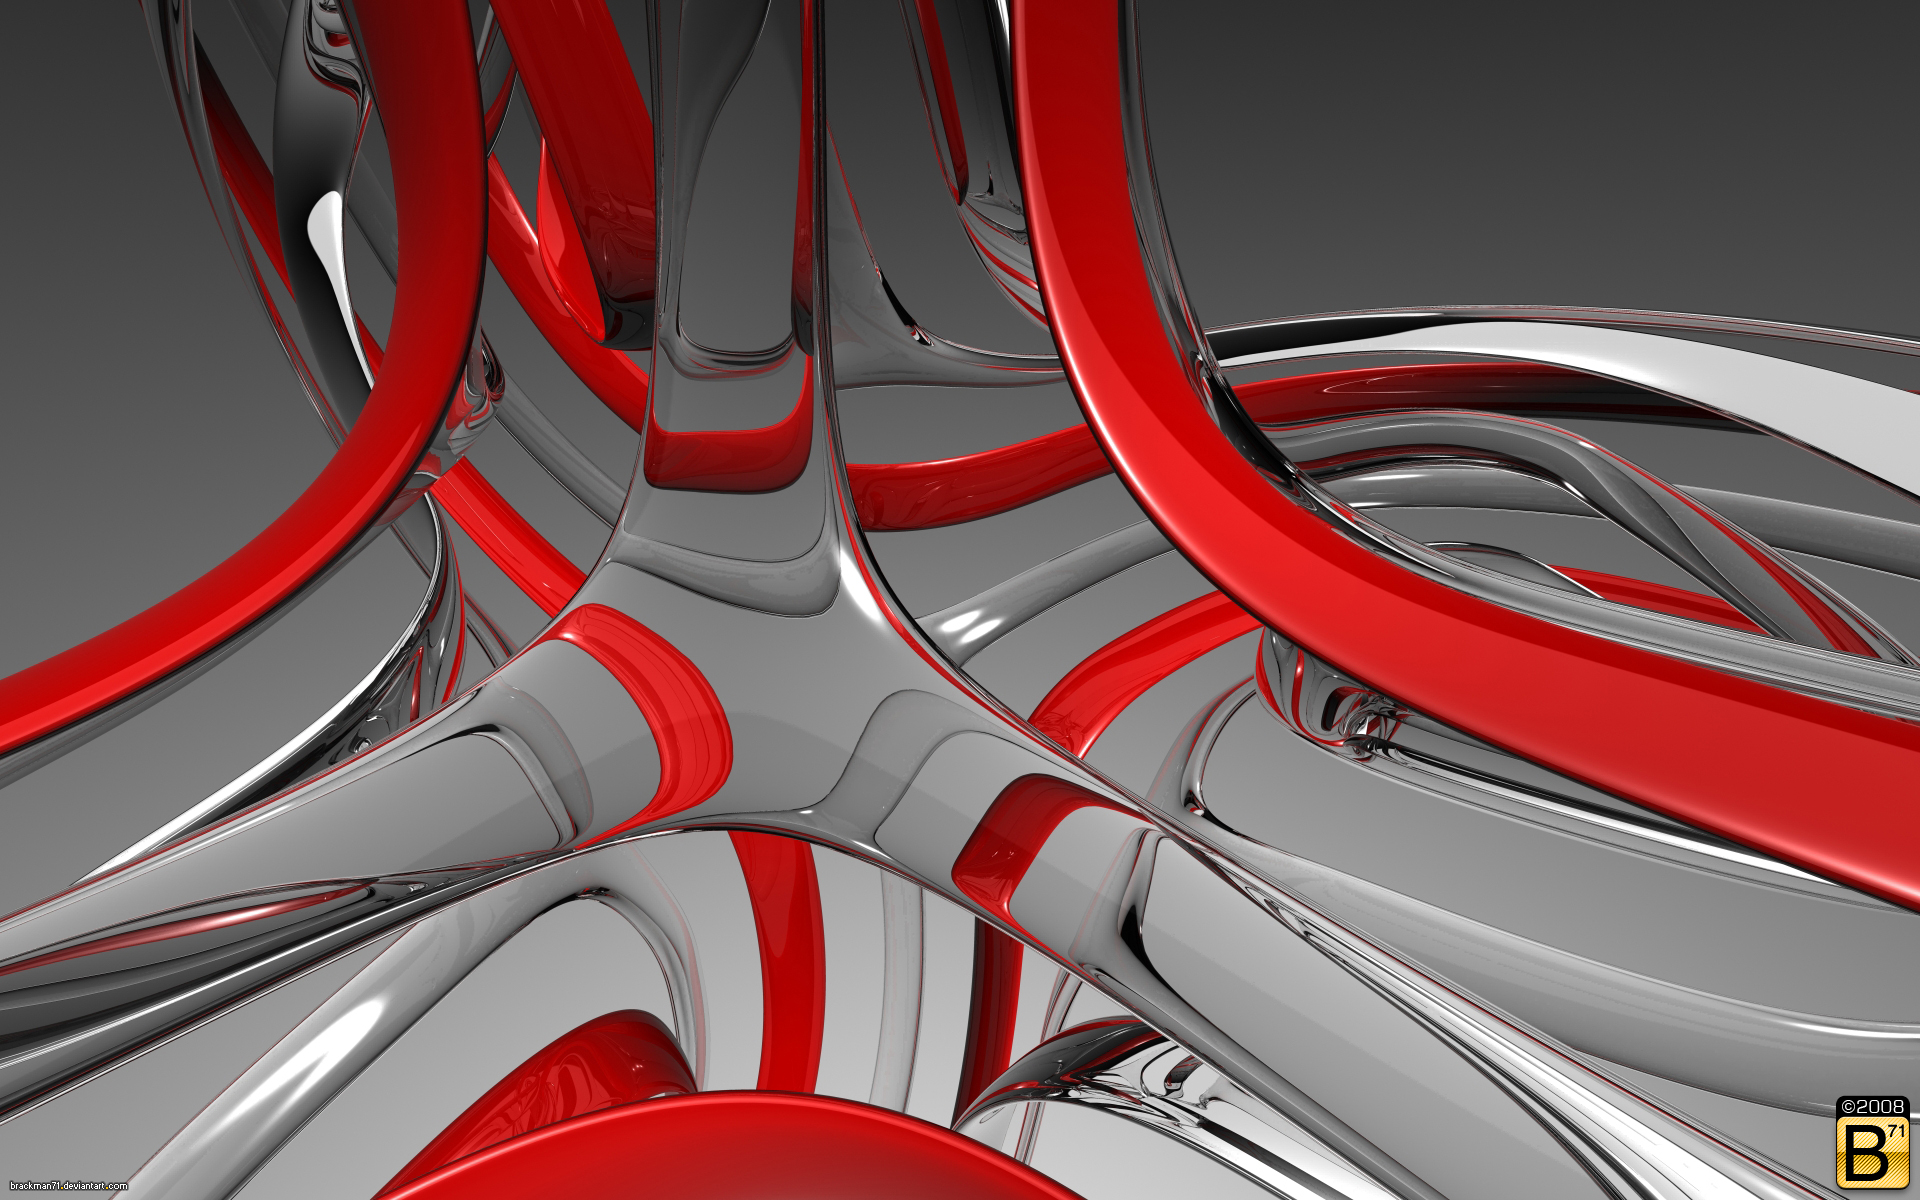 Black and white wallpapers grey abstract wallpaper html code - Red And Silver Wallpaper Wallpapersafari